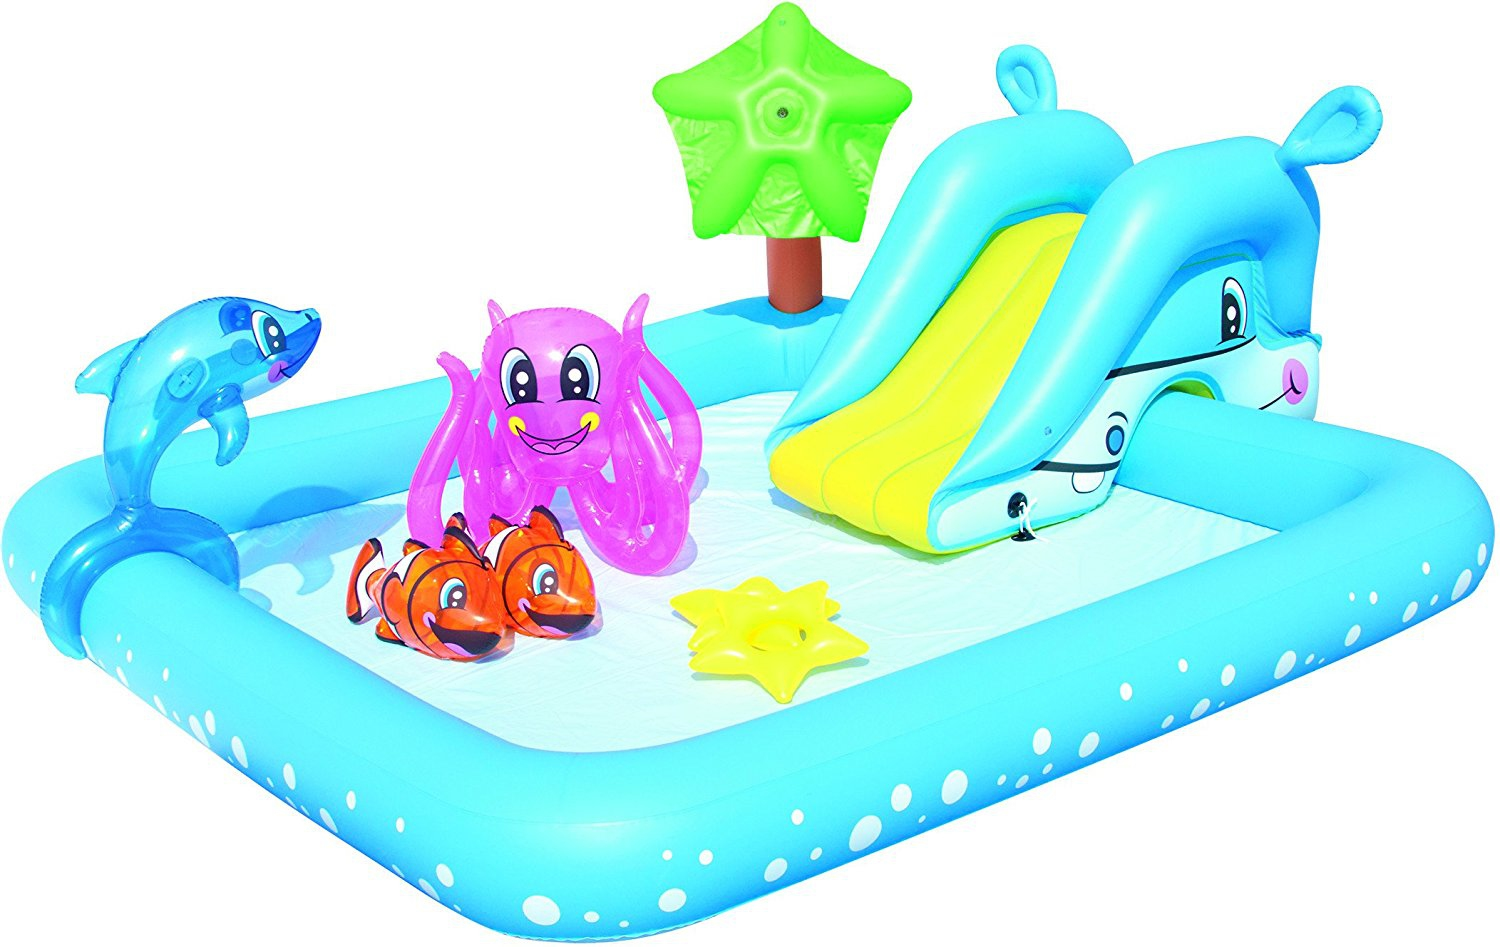 Splash clipart pool toy. Bestway inflatable aquarium fish